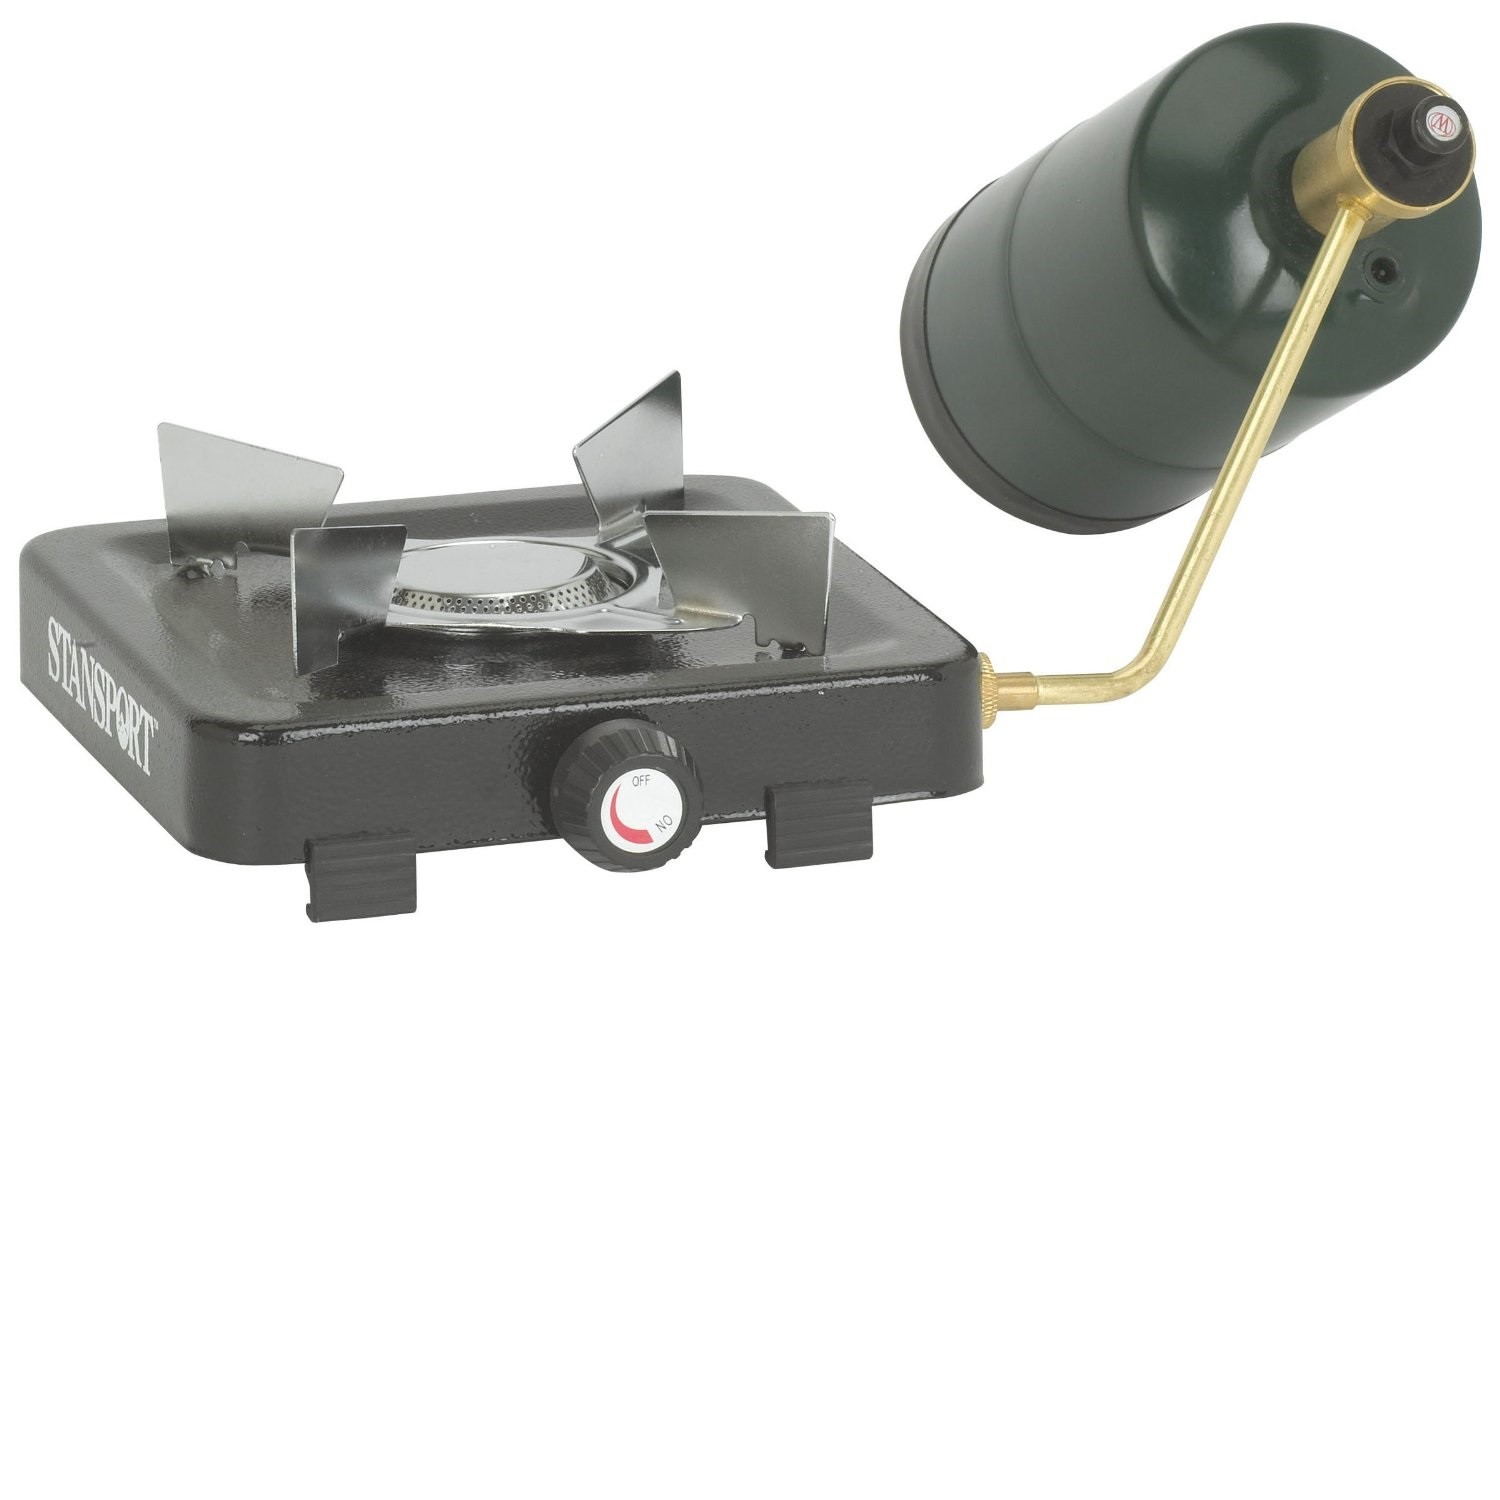 Stansports Single Burner Propane Stove by Stansport